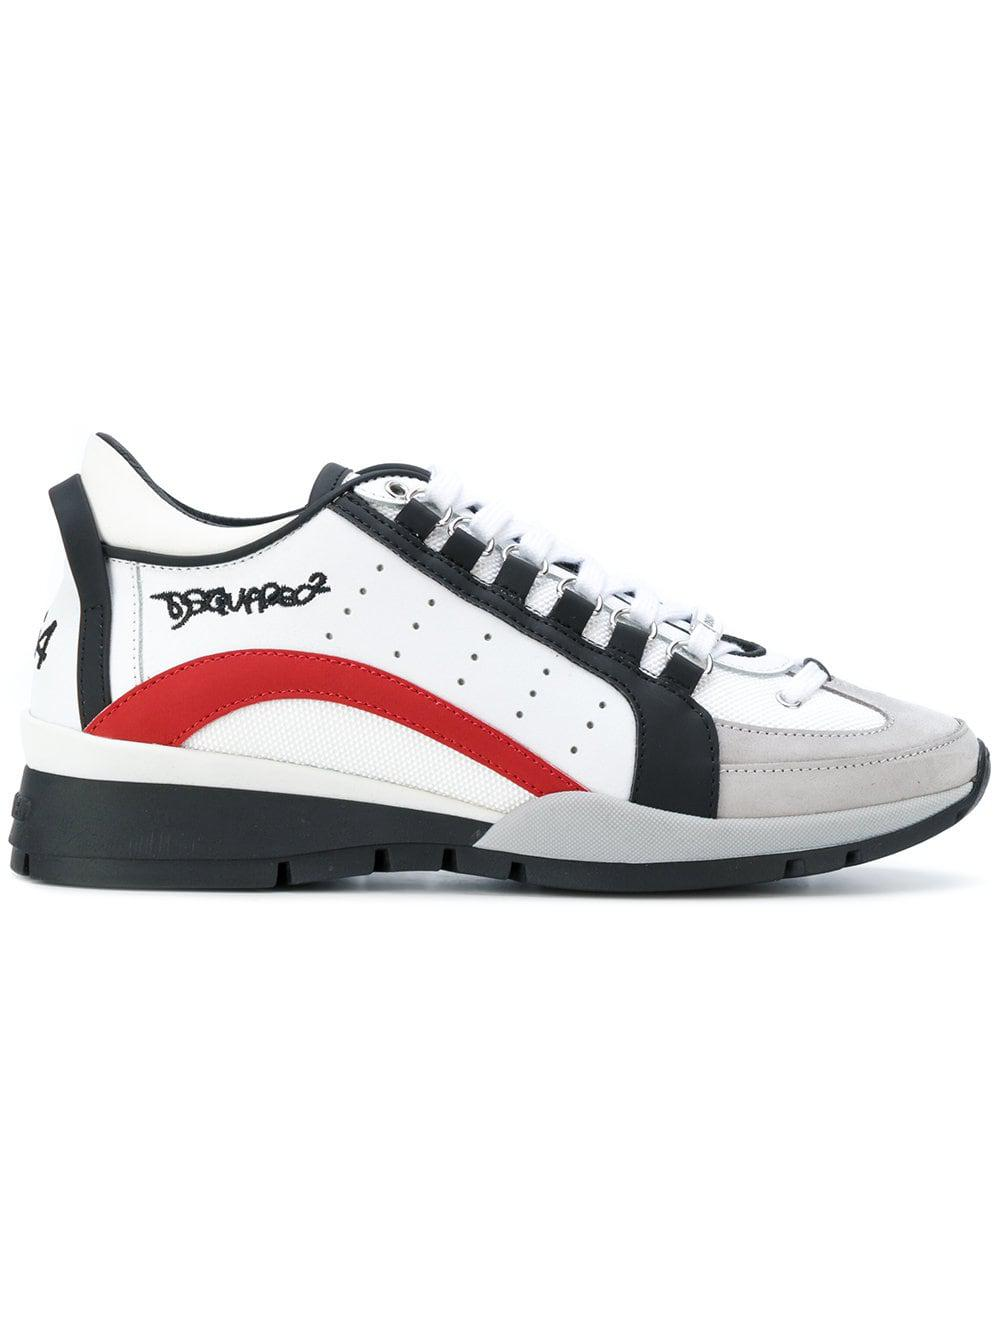 DSquared² Sneakers '251'